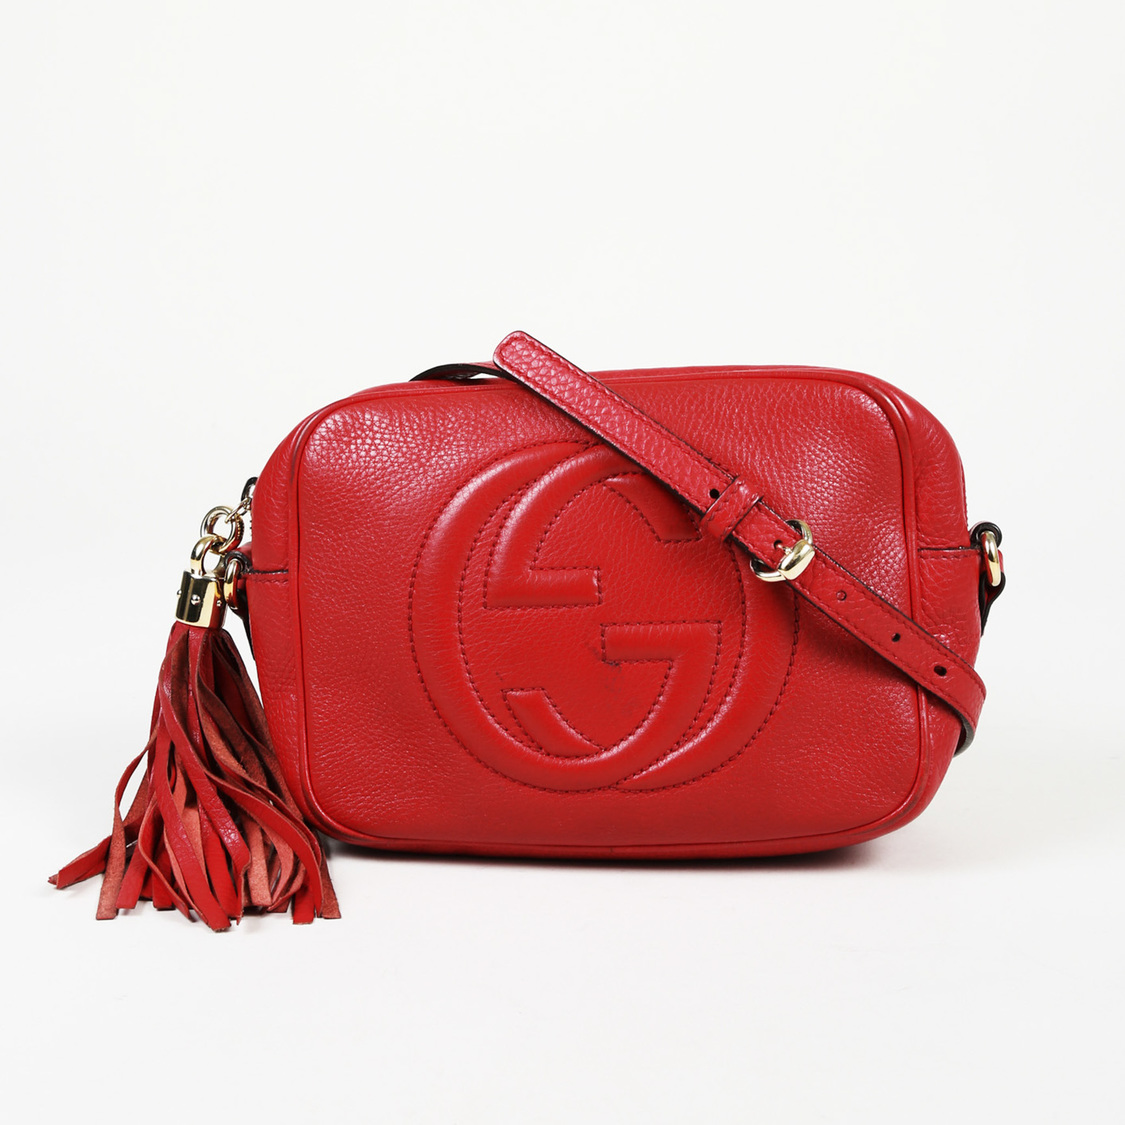 6e6a3cbb2b02 Details about Gucci Leather Small